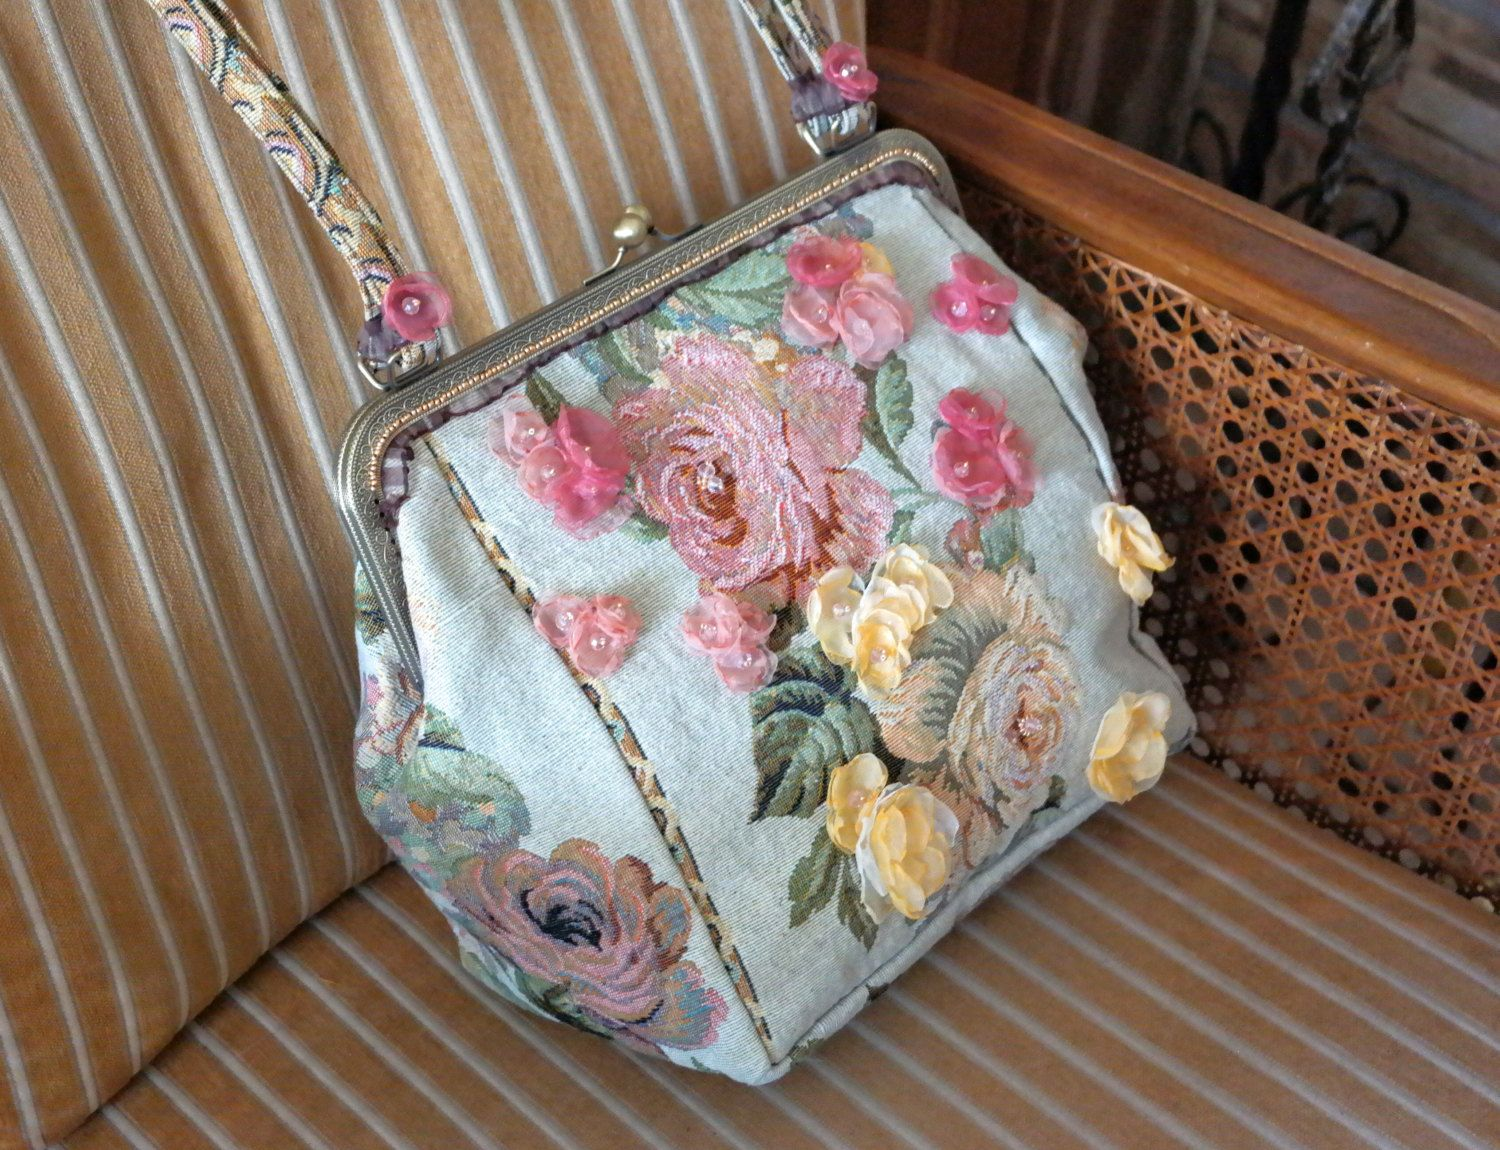 Floral tapestry bag pink beige tapestry purse fabric handbag carpet bag embroidered bag pink beige flower bag vintage bag unique handbag by Fantazzihandmade on Etsy